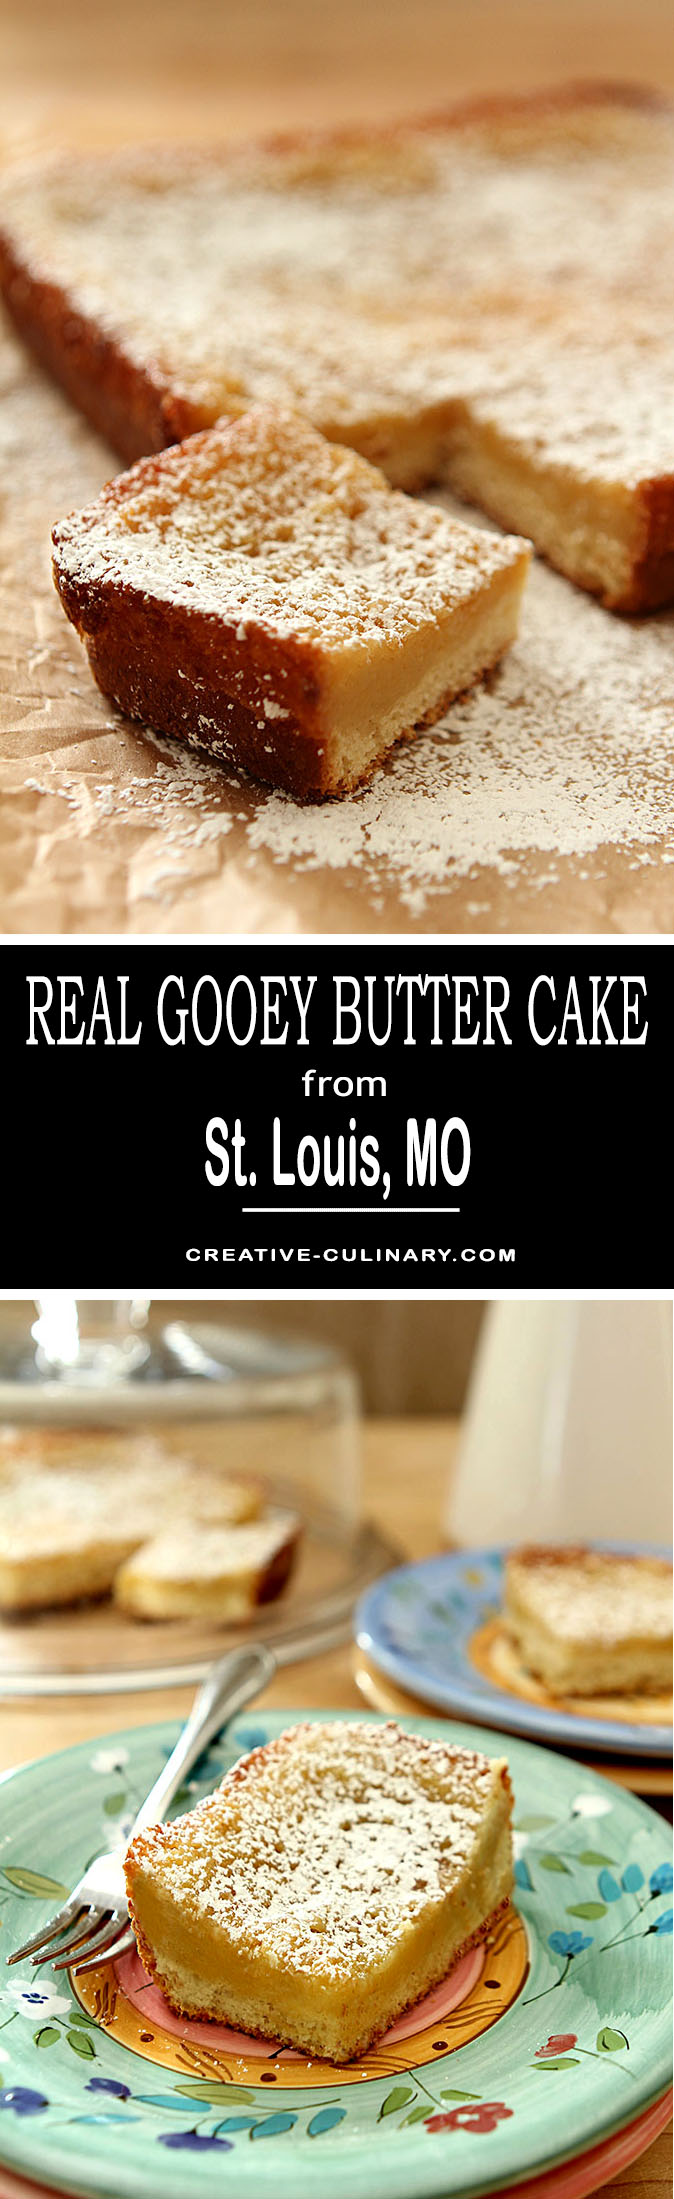 Nothing but the real thing will do. Real St. Louis Gooey Butter Cake is a yeast bread layer topped with the namesake 'gooey' layer. Walk away from the cake mix and try the real thing!